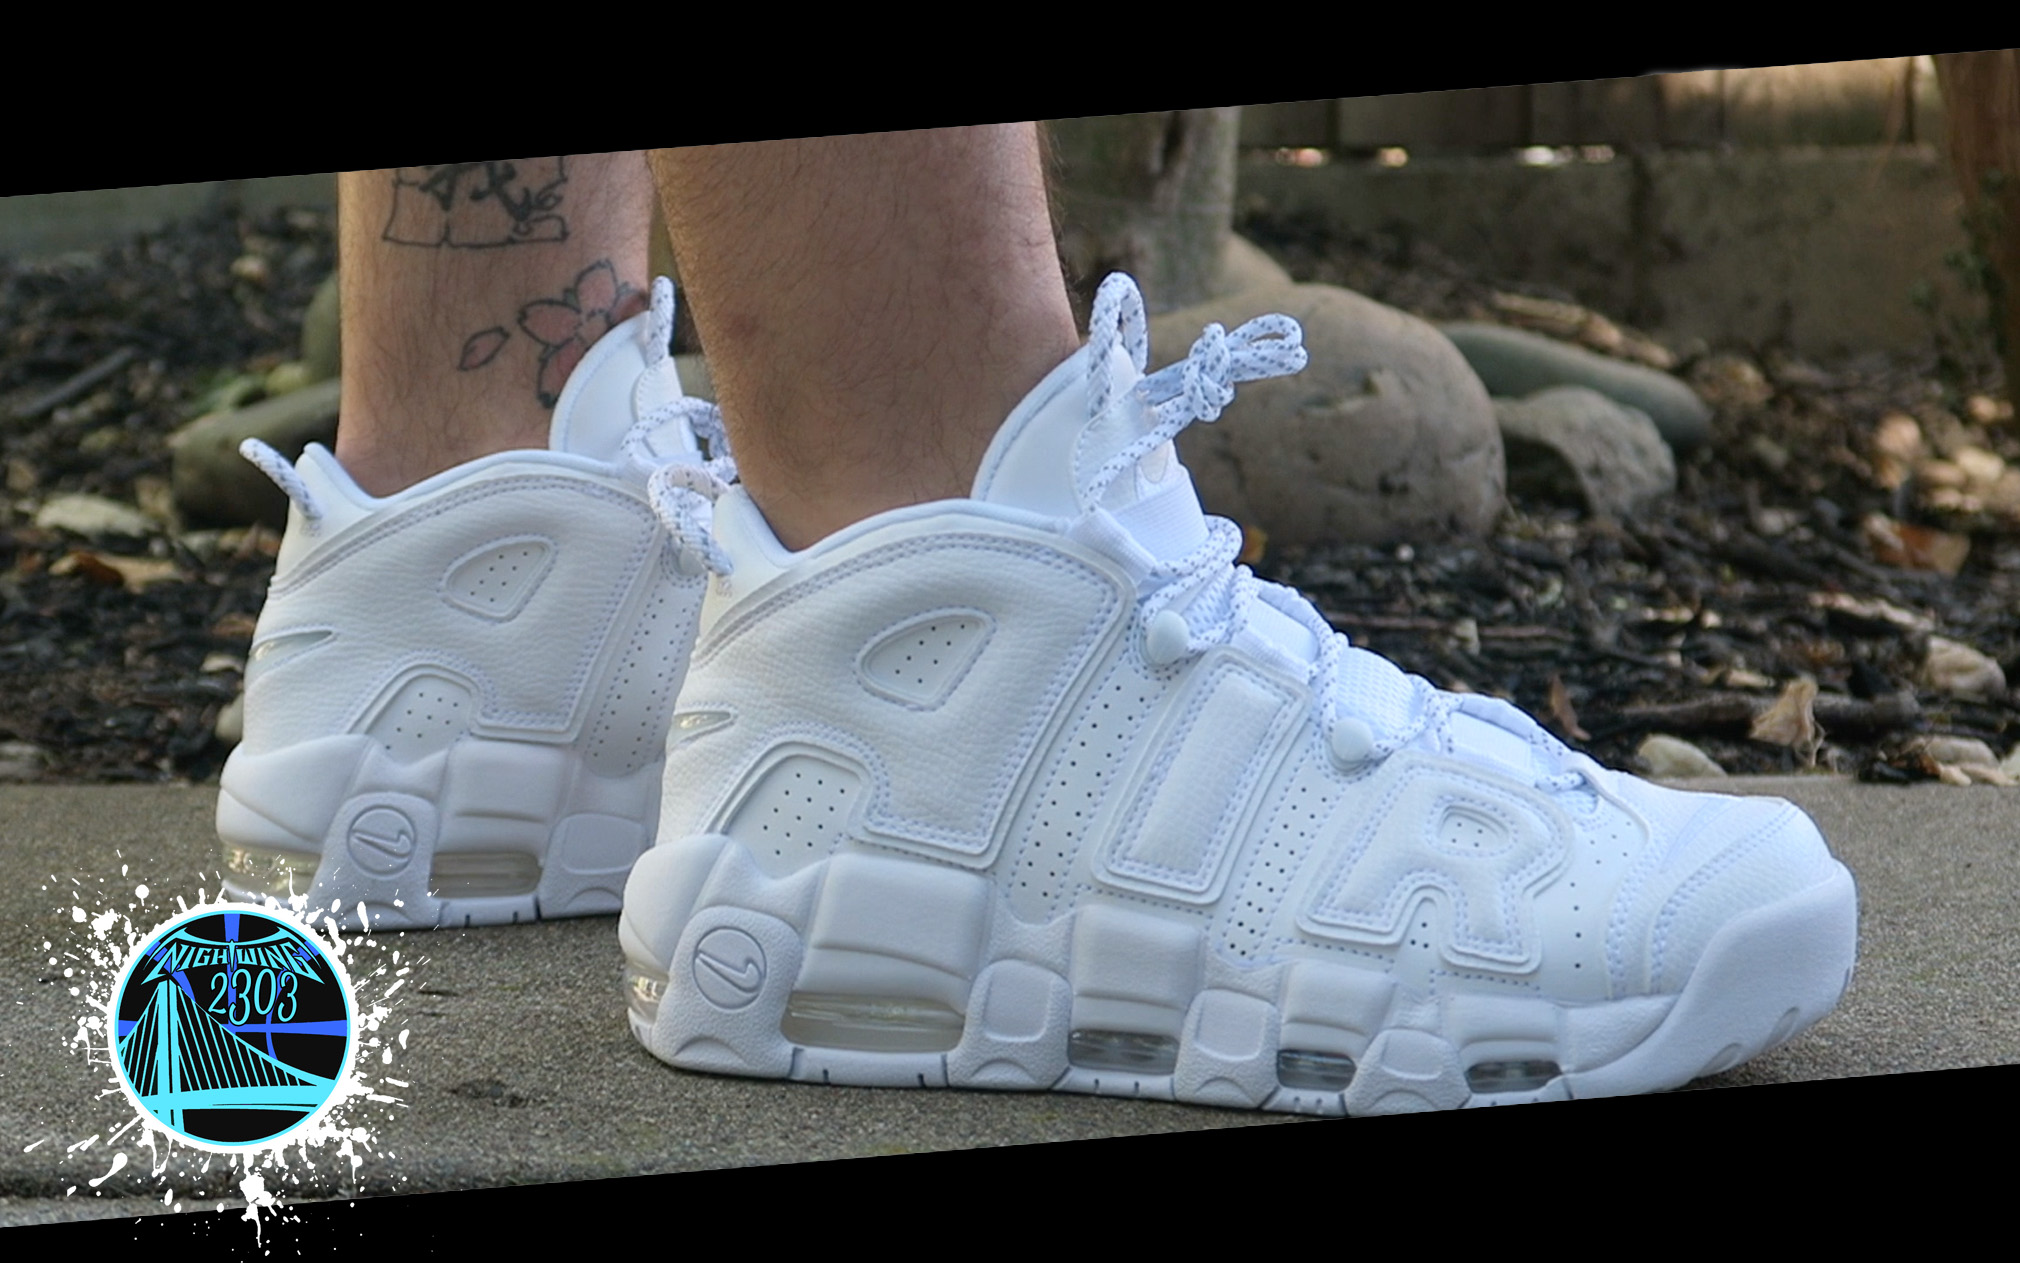 Nike Air More Uptempo 'White on White' | Detailed Look and Review